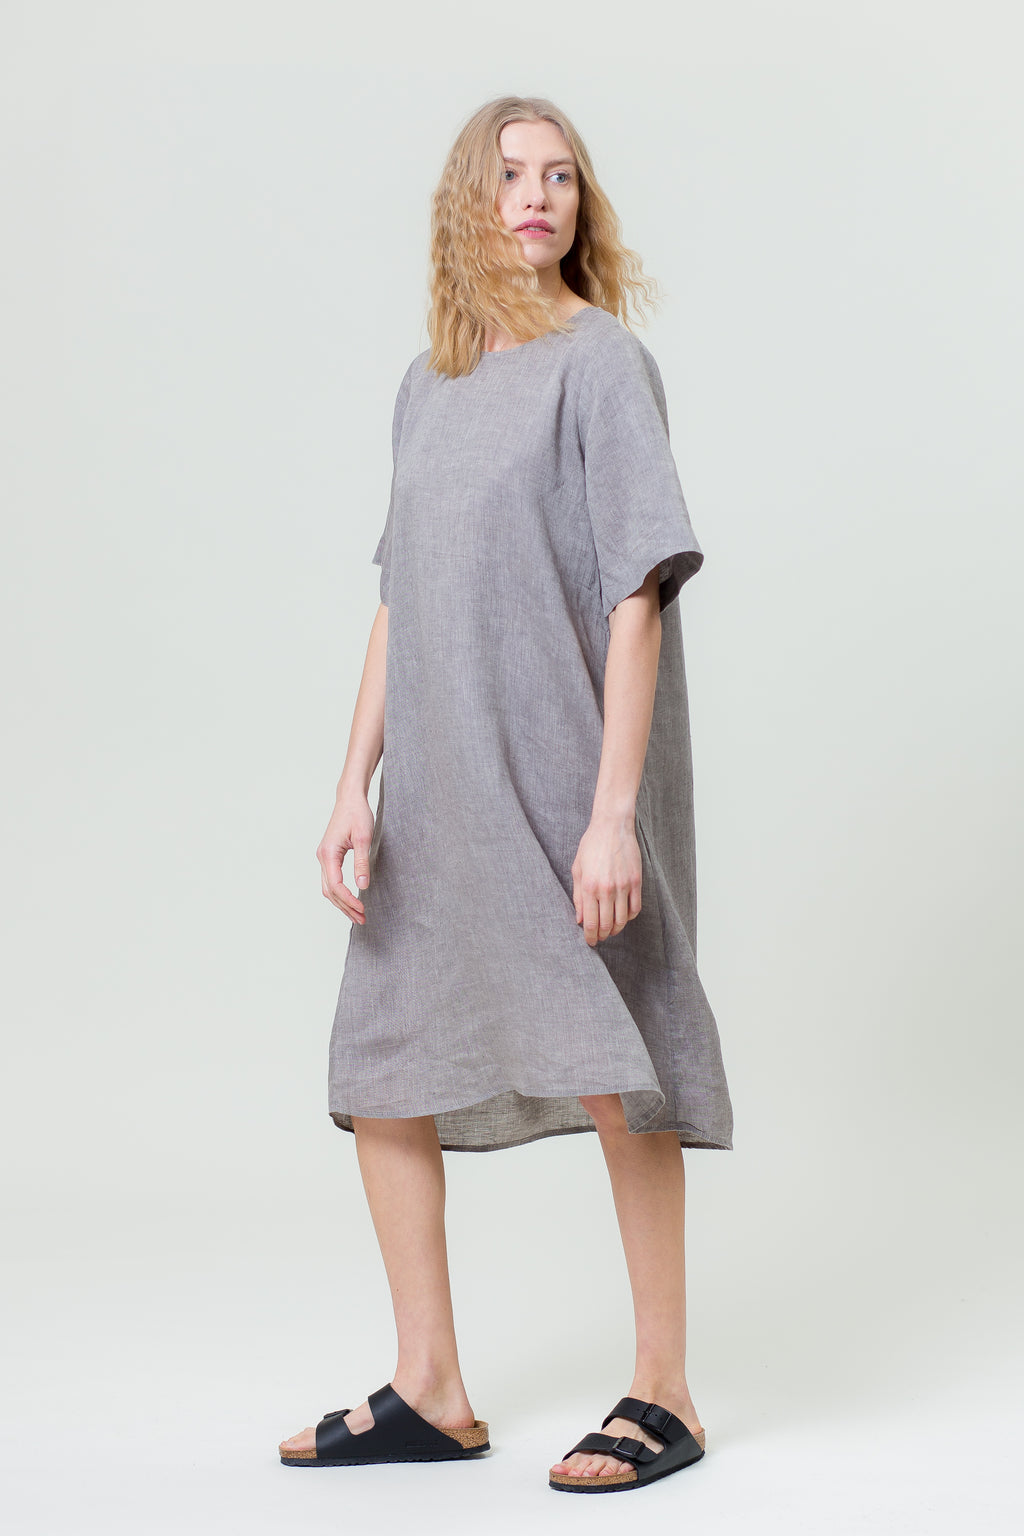 Linen Dress JŪRA graphite grey